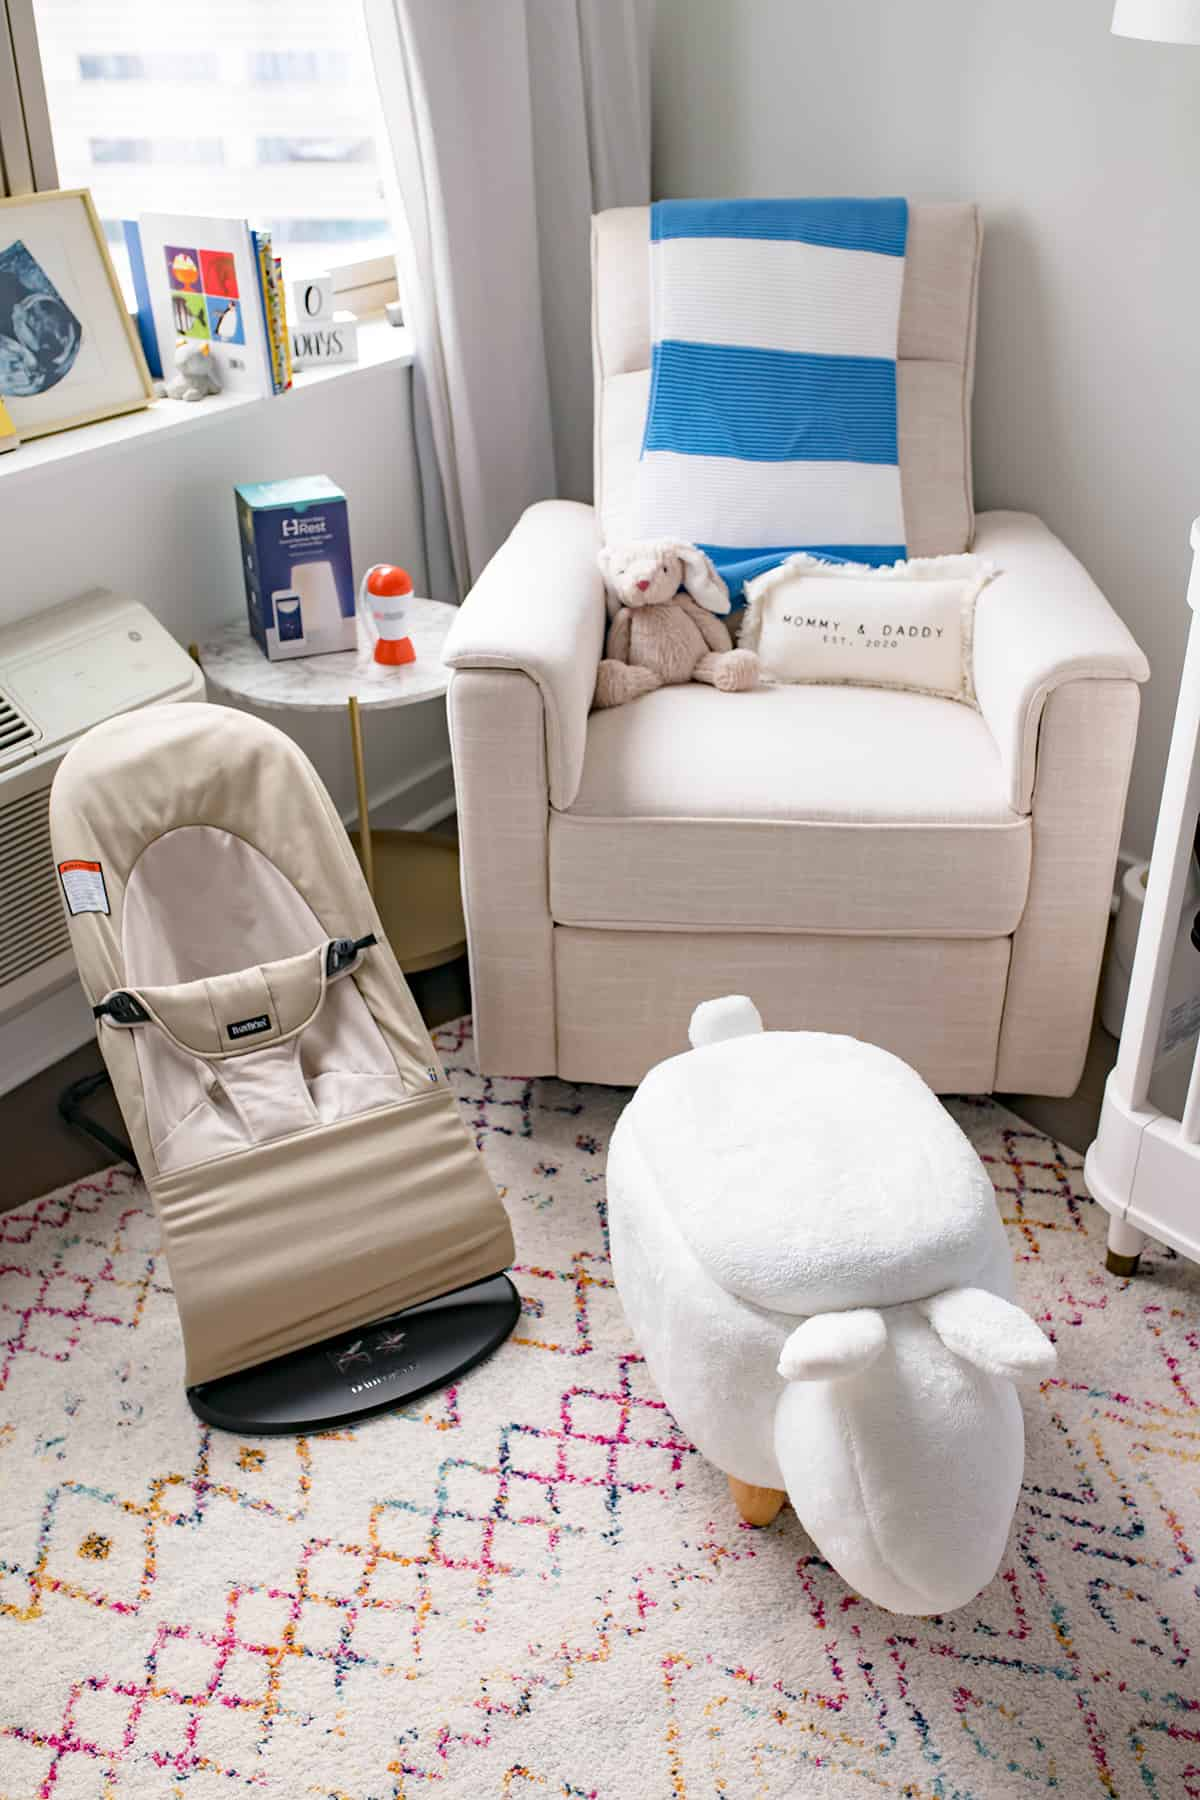 Katies Bliss Baby Registry